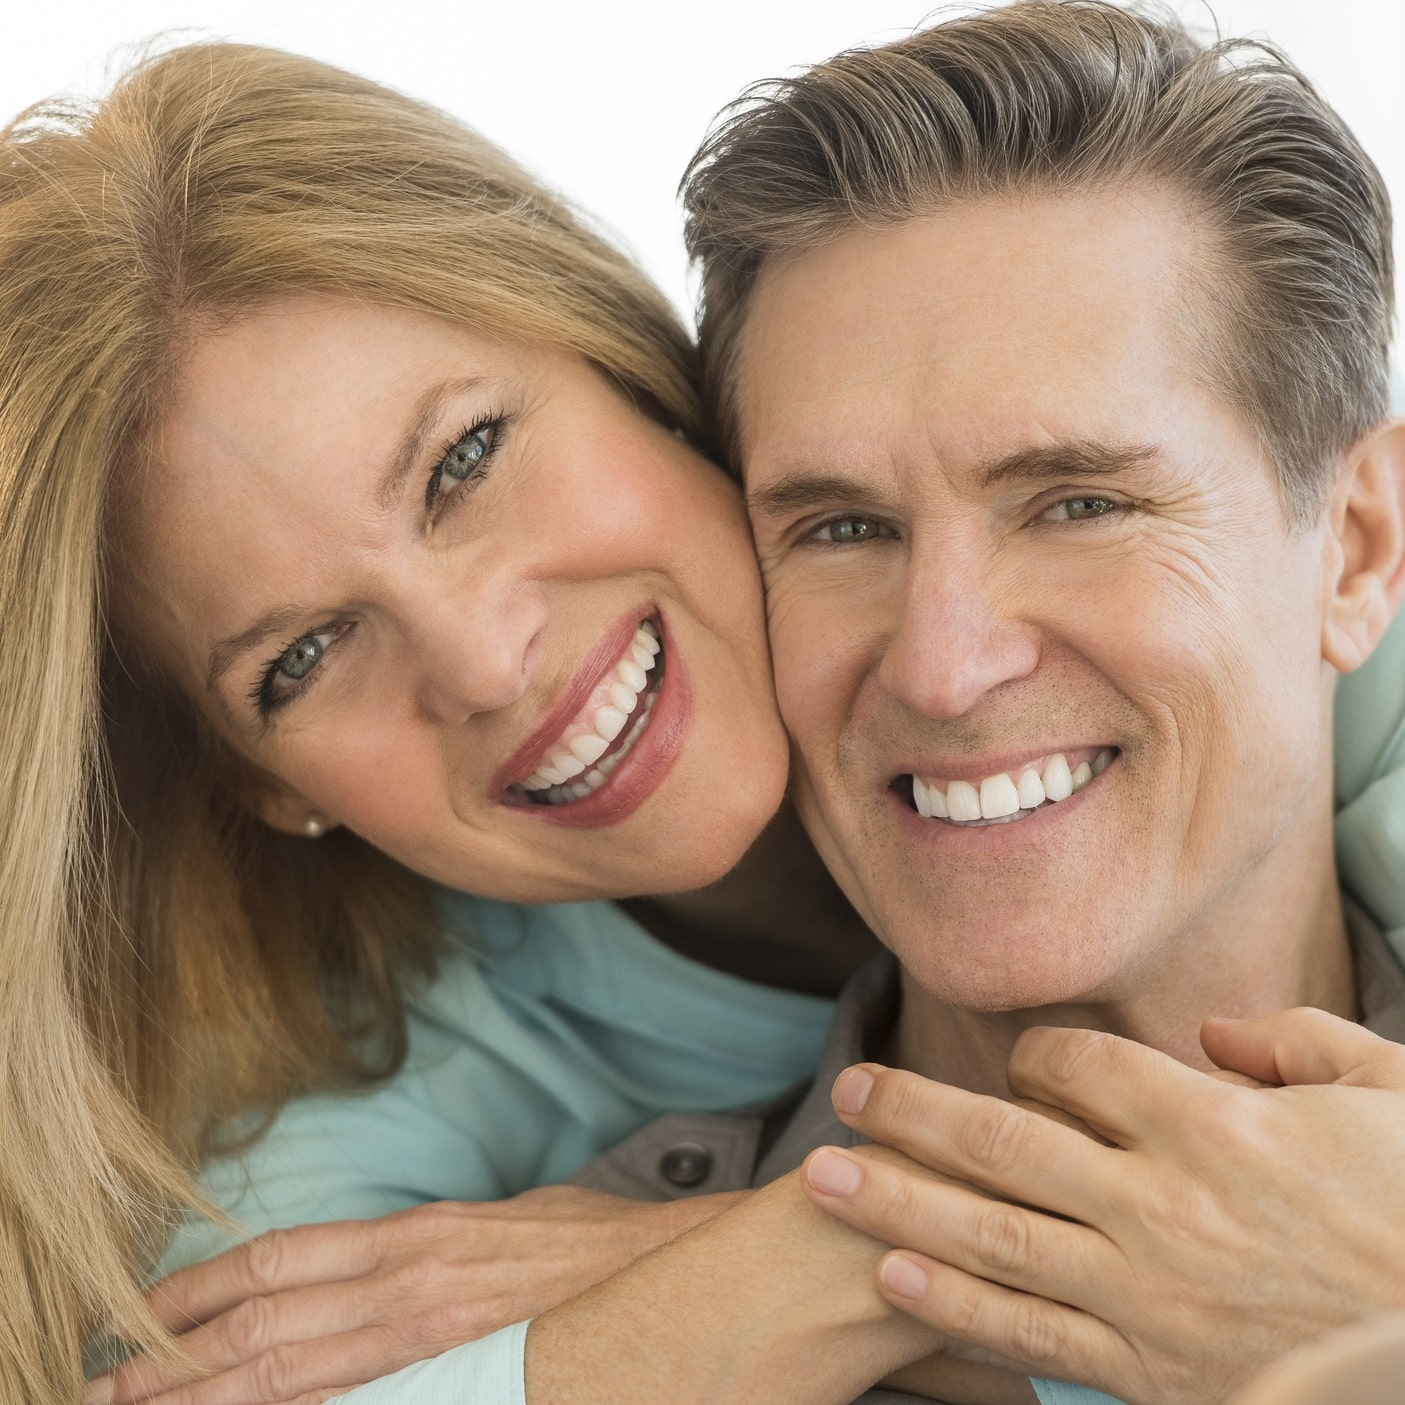 A man and woman smile to show how restorative dentistry has restored the health and beauty of their smiles.